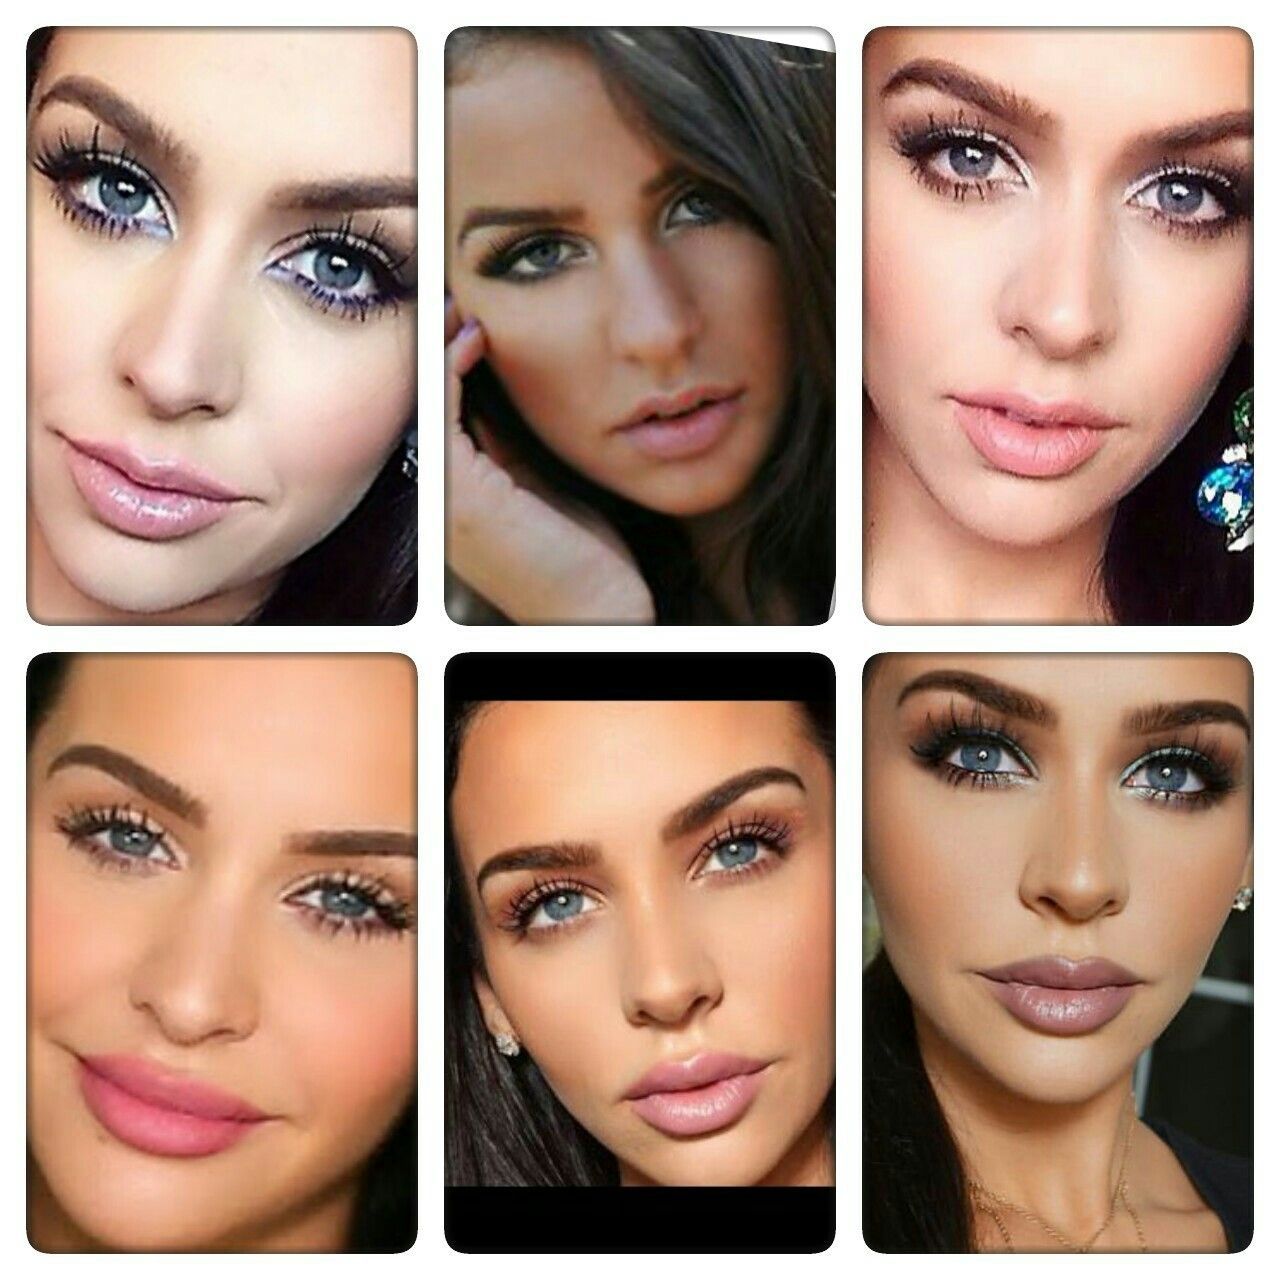 Carli bybel lip injection top row before bottom row